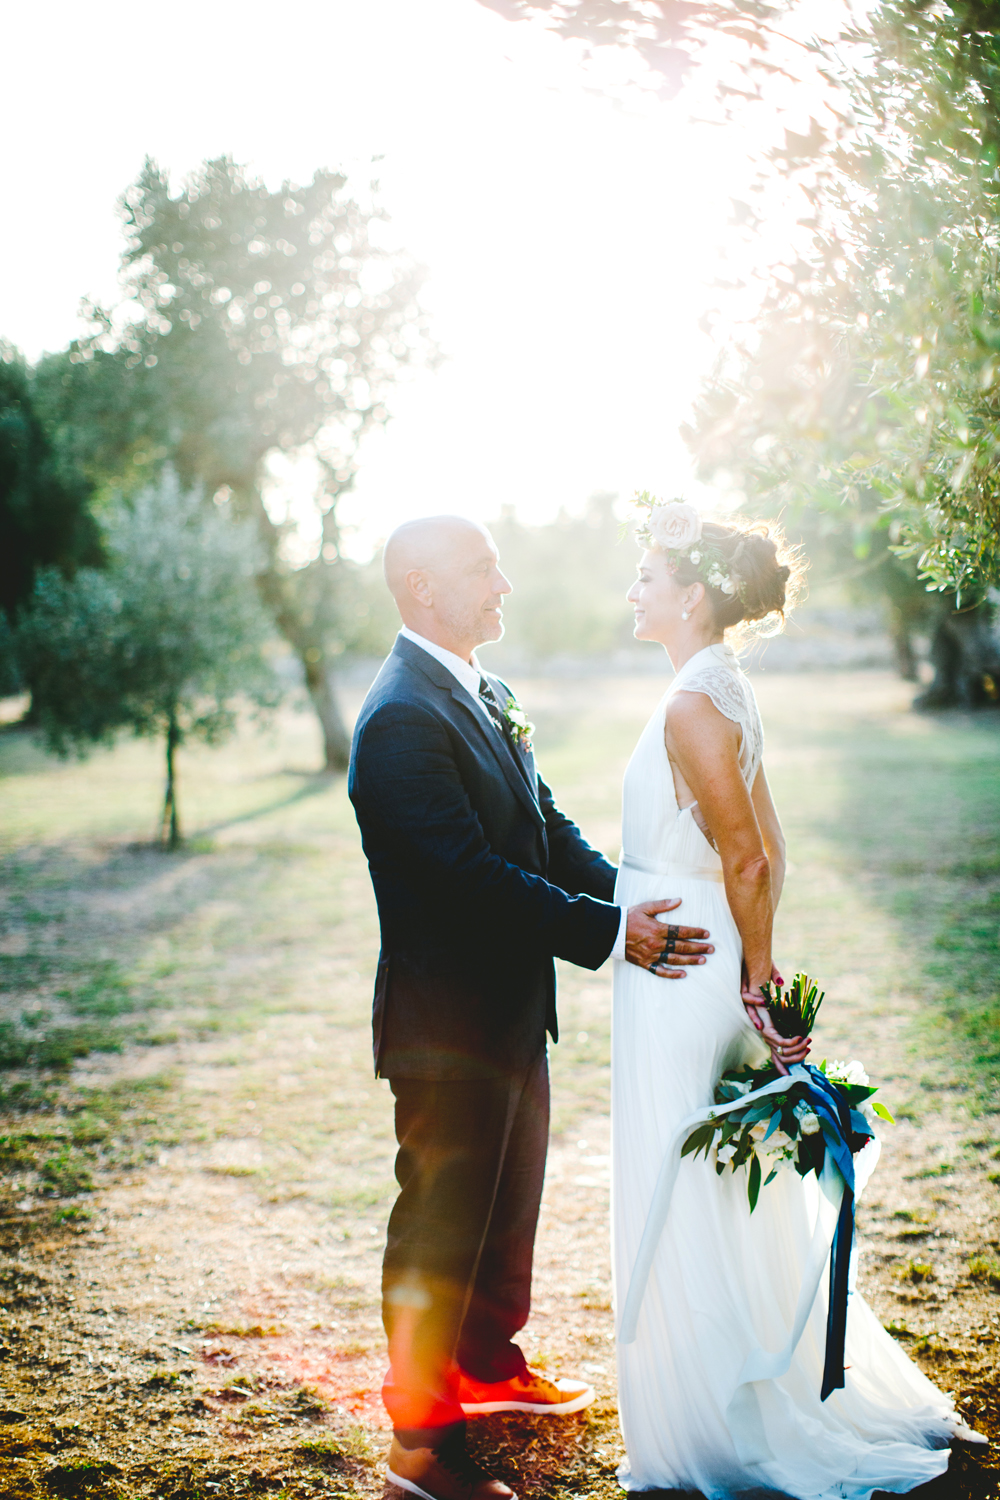 Les Amis Photo_Destination Wedding Photographer_Wedding in Puglia_BARMIC_15_399.jpg